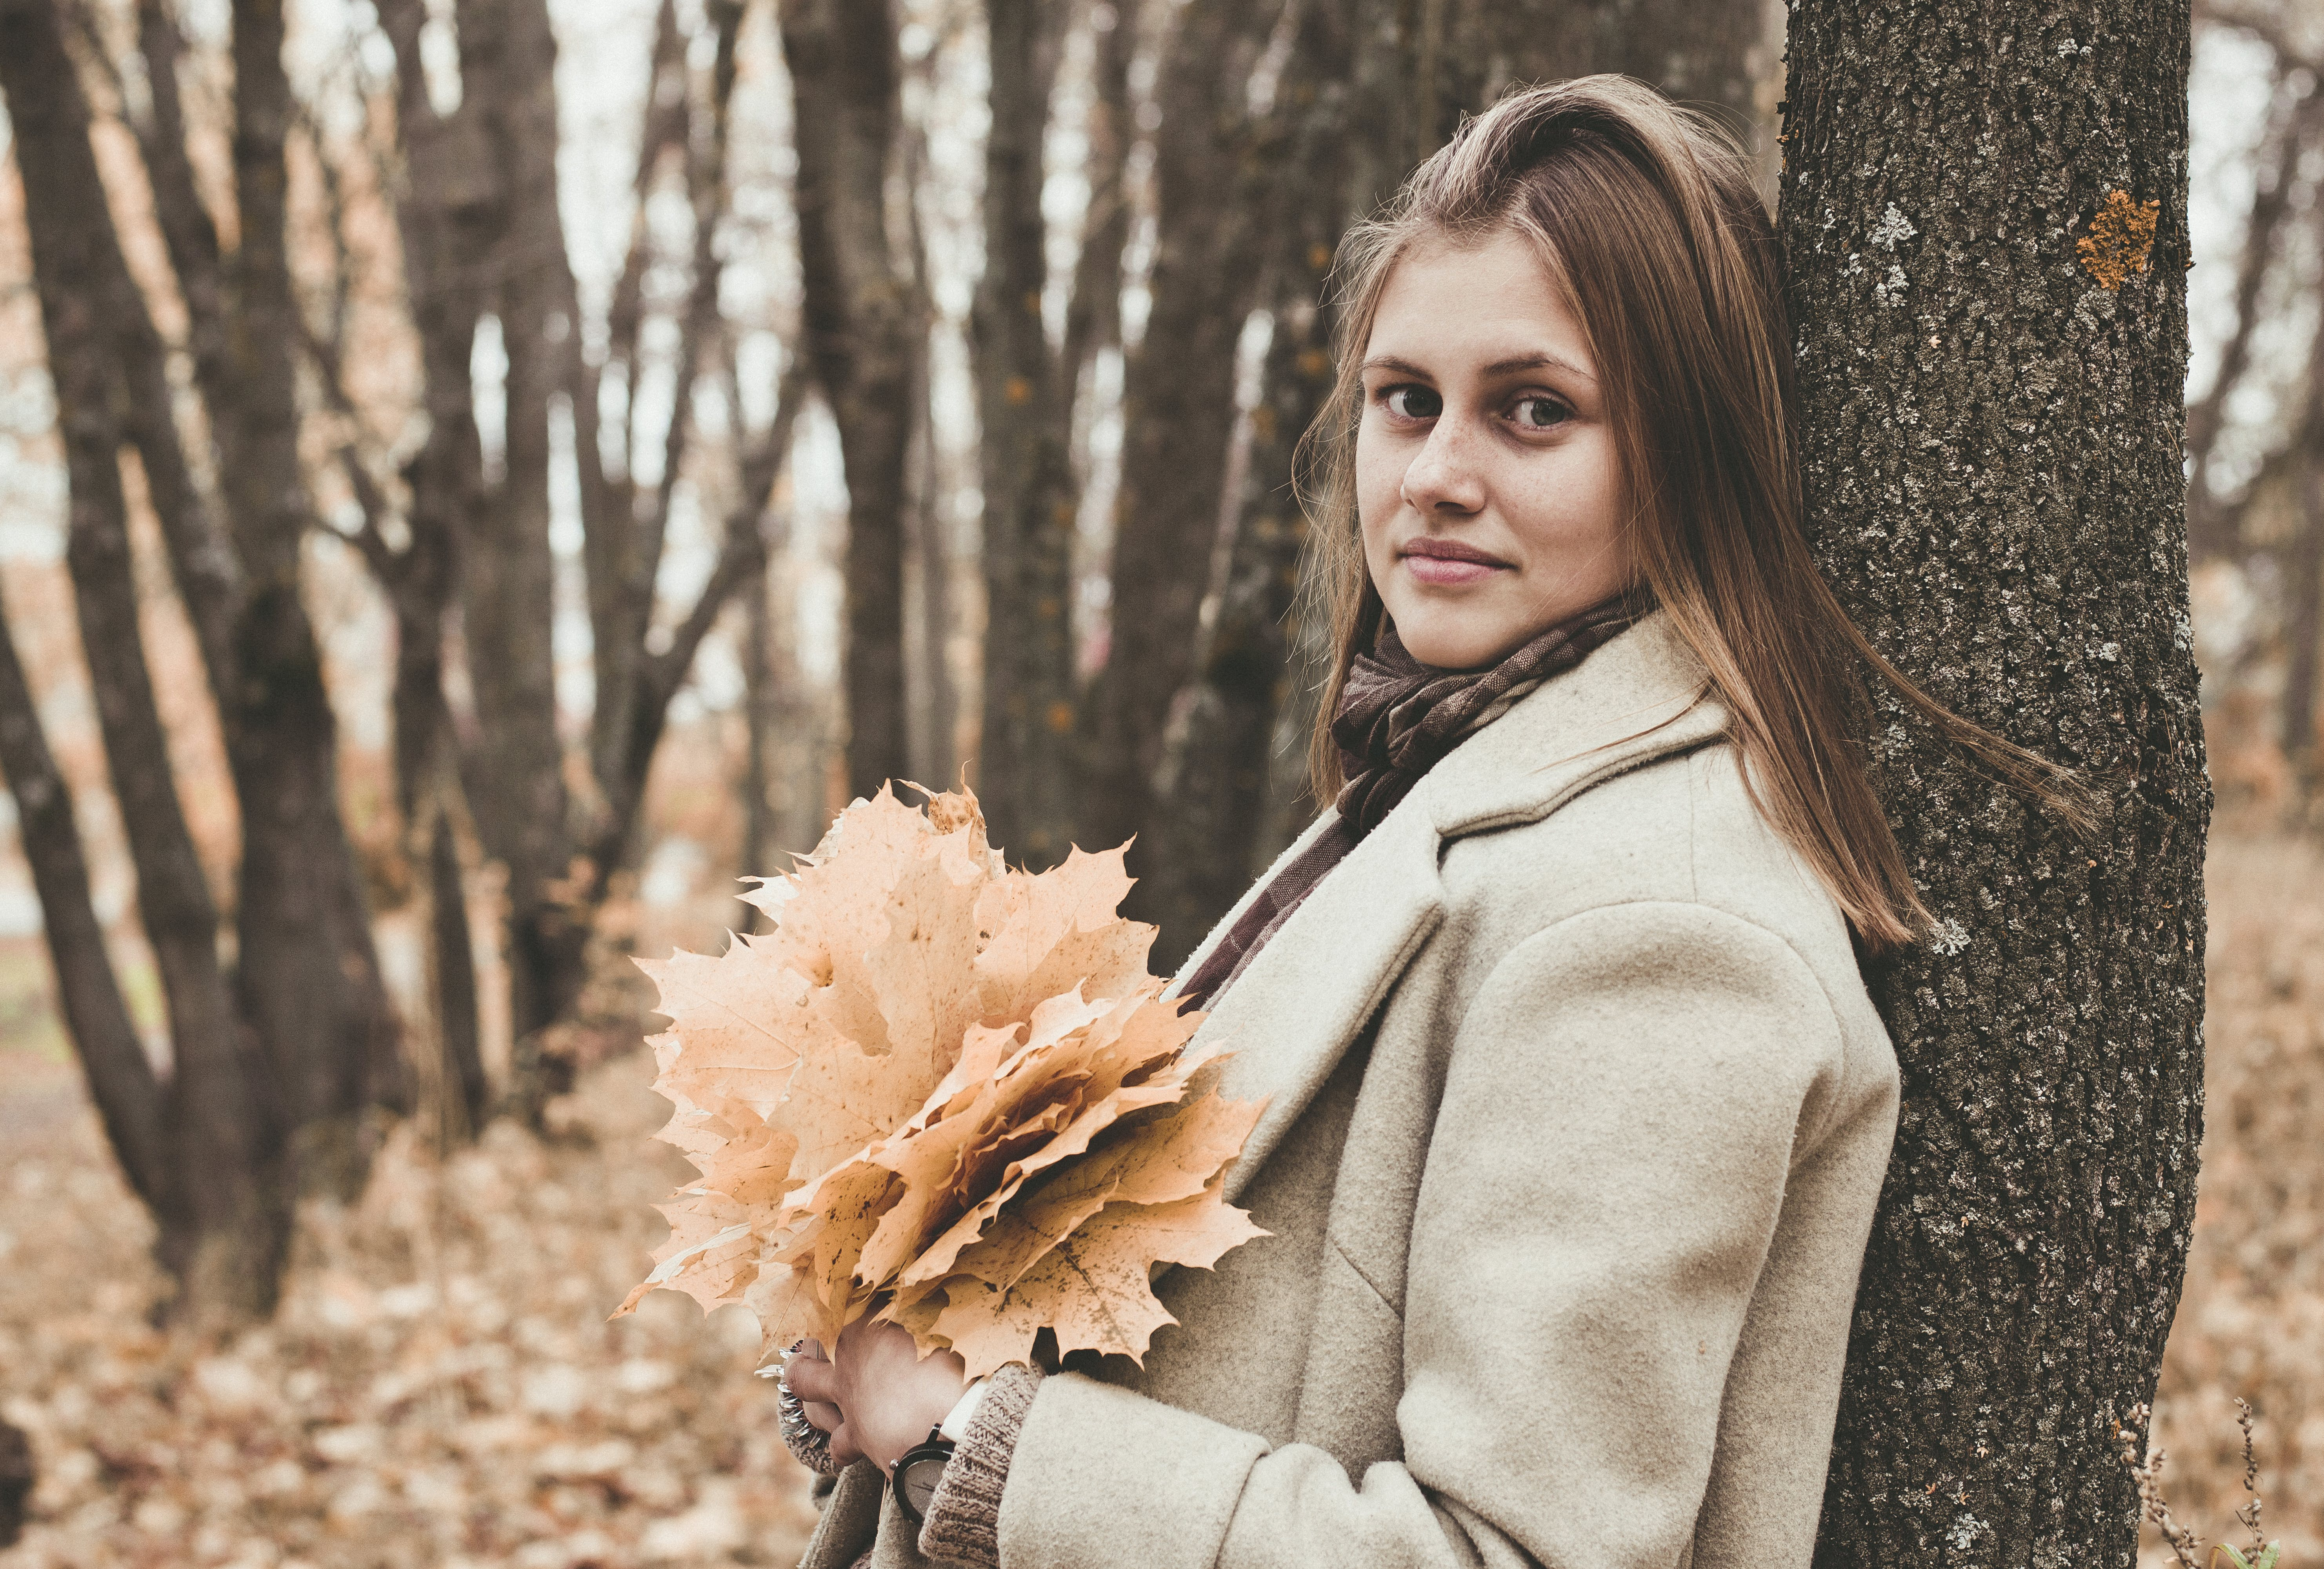 Woman Holding Leaves While Leaning Her Back on Tree